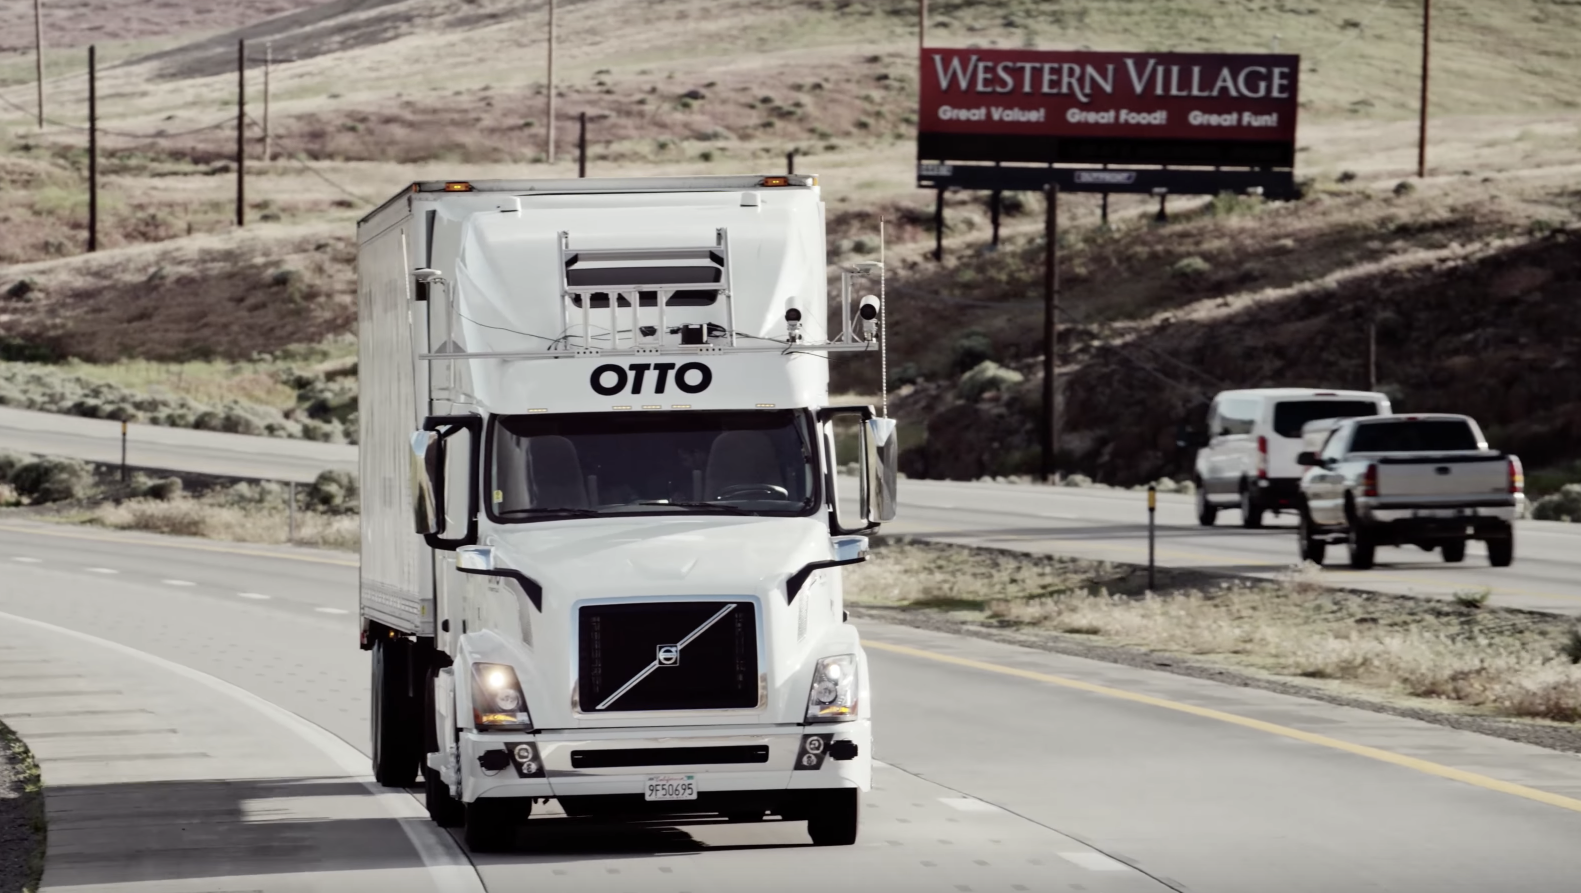 An Otto truck on the road.